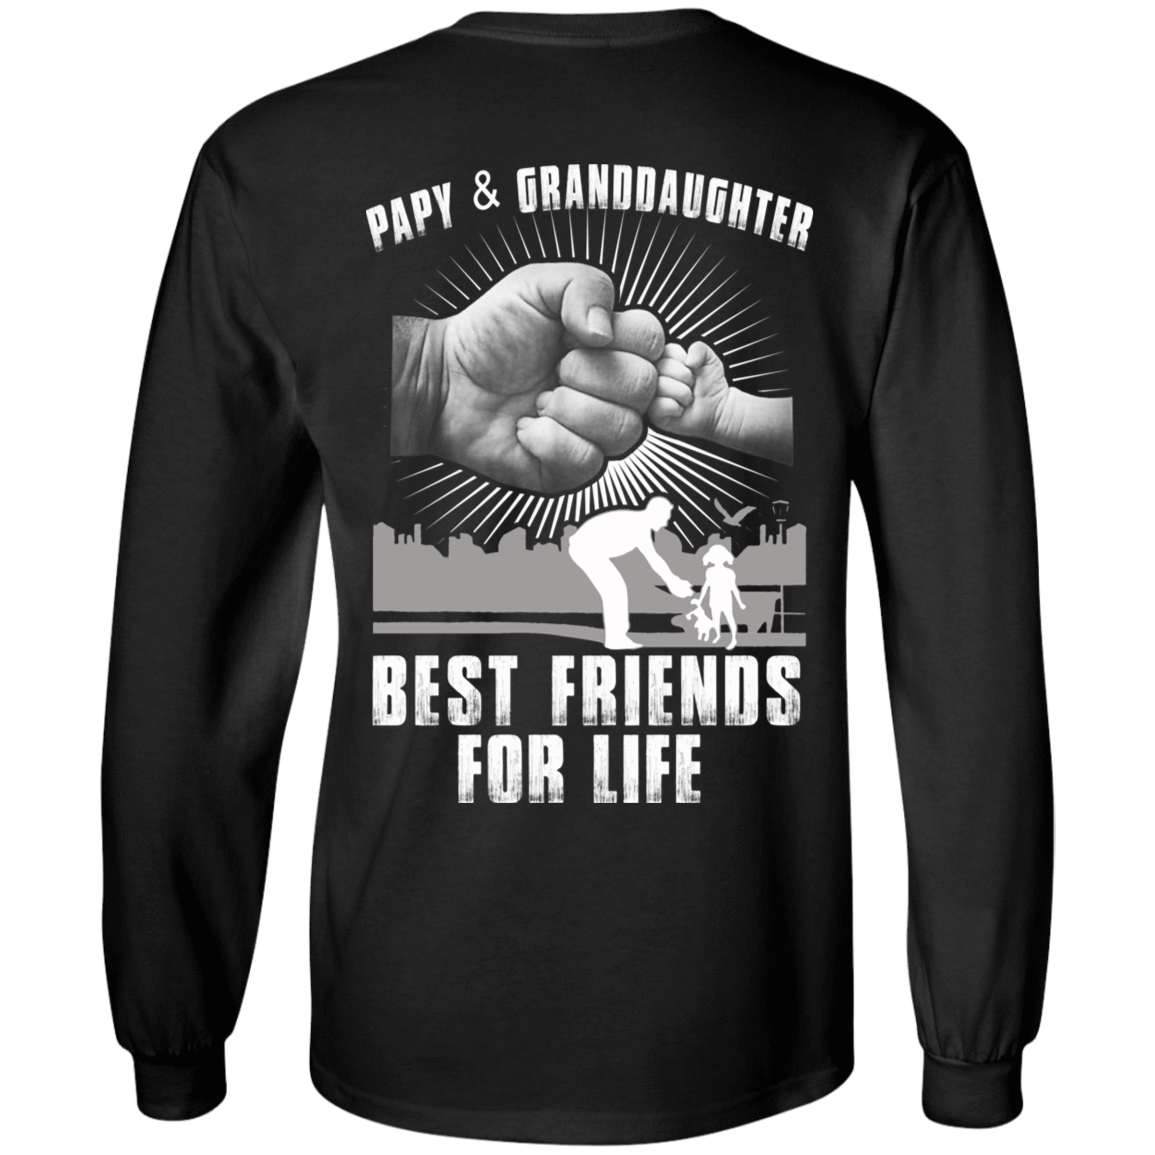 Papy And Granddaughter Best Friends For Life 30-186-71996228-333 - Tee Ript